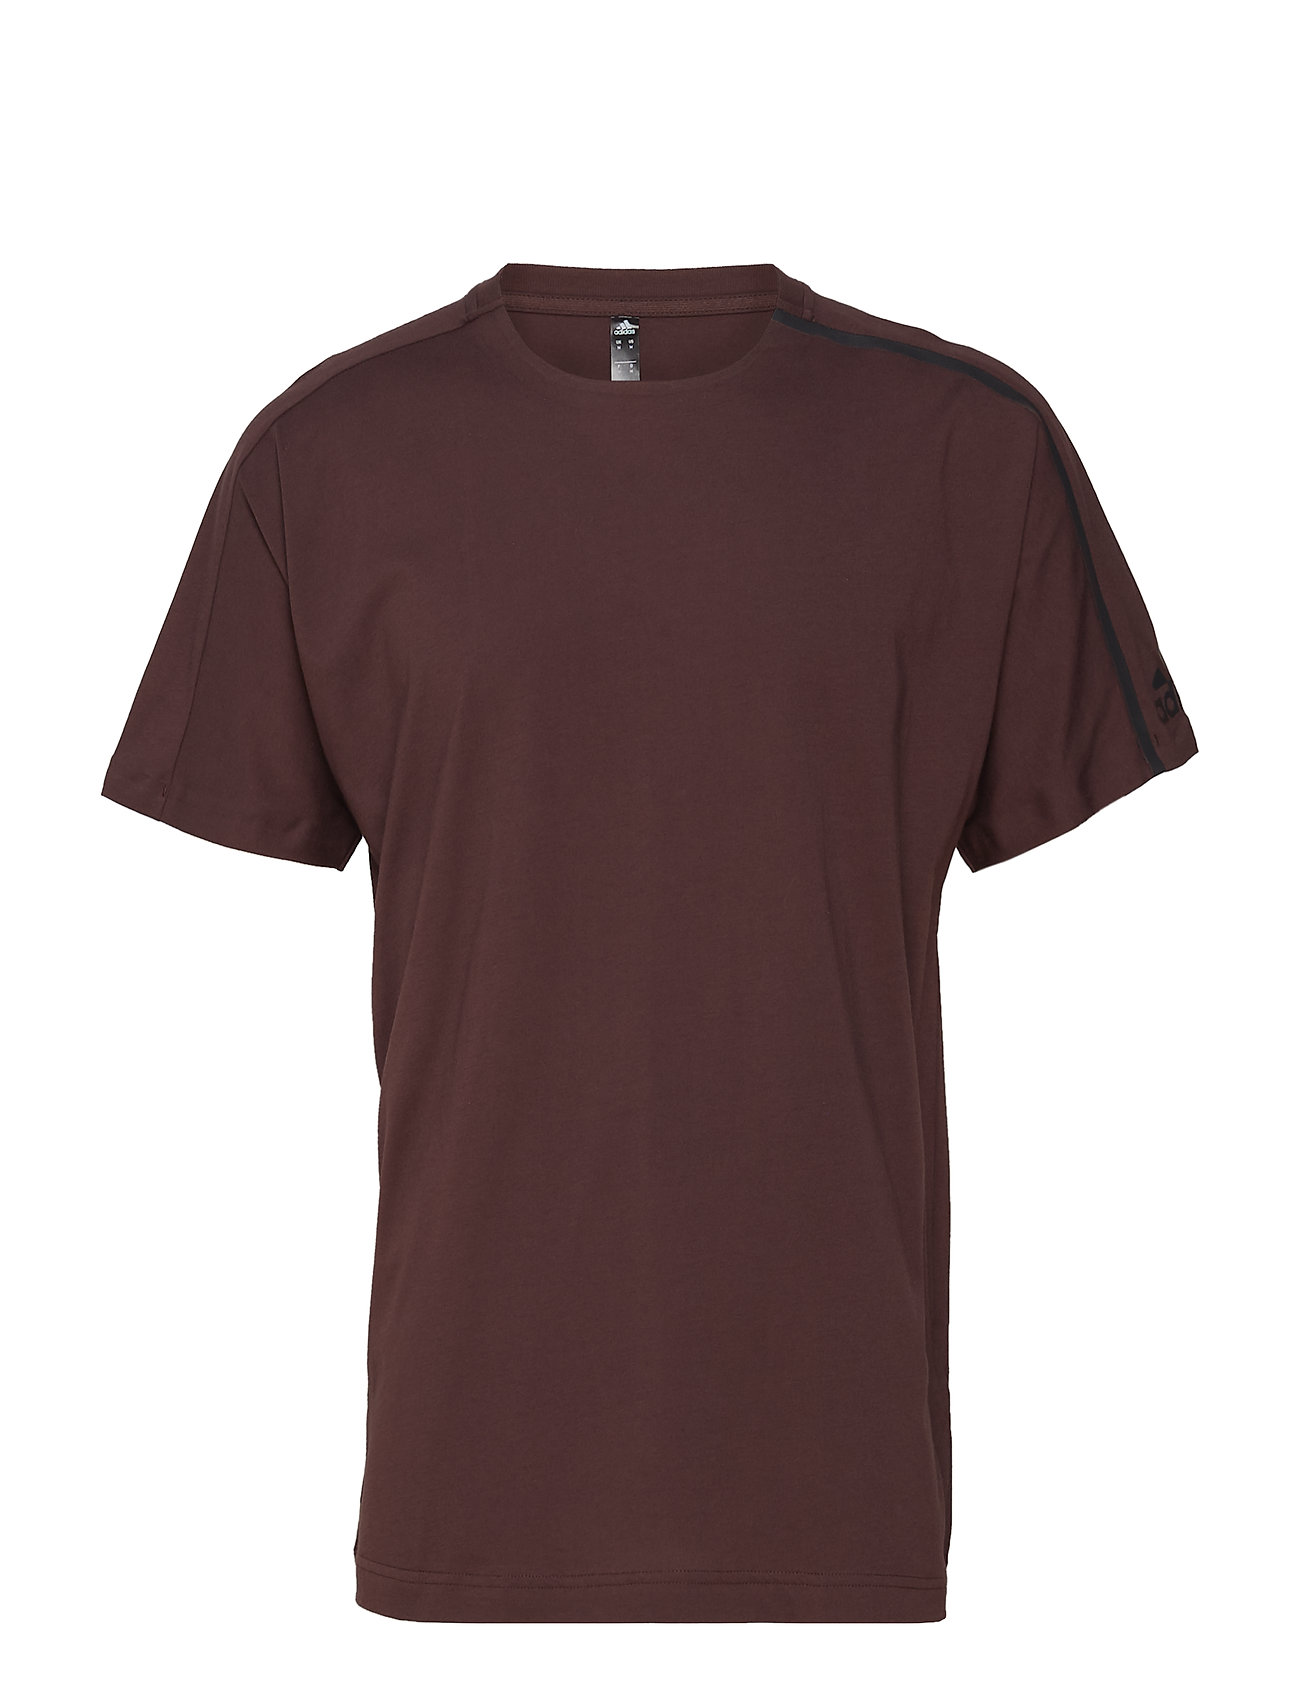 adidas Performance M ZNE tee - NGTRED